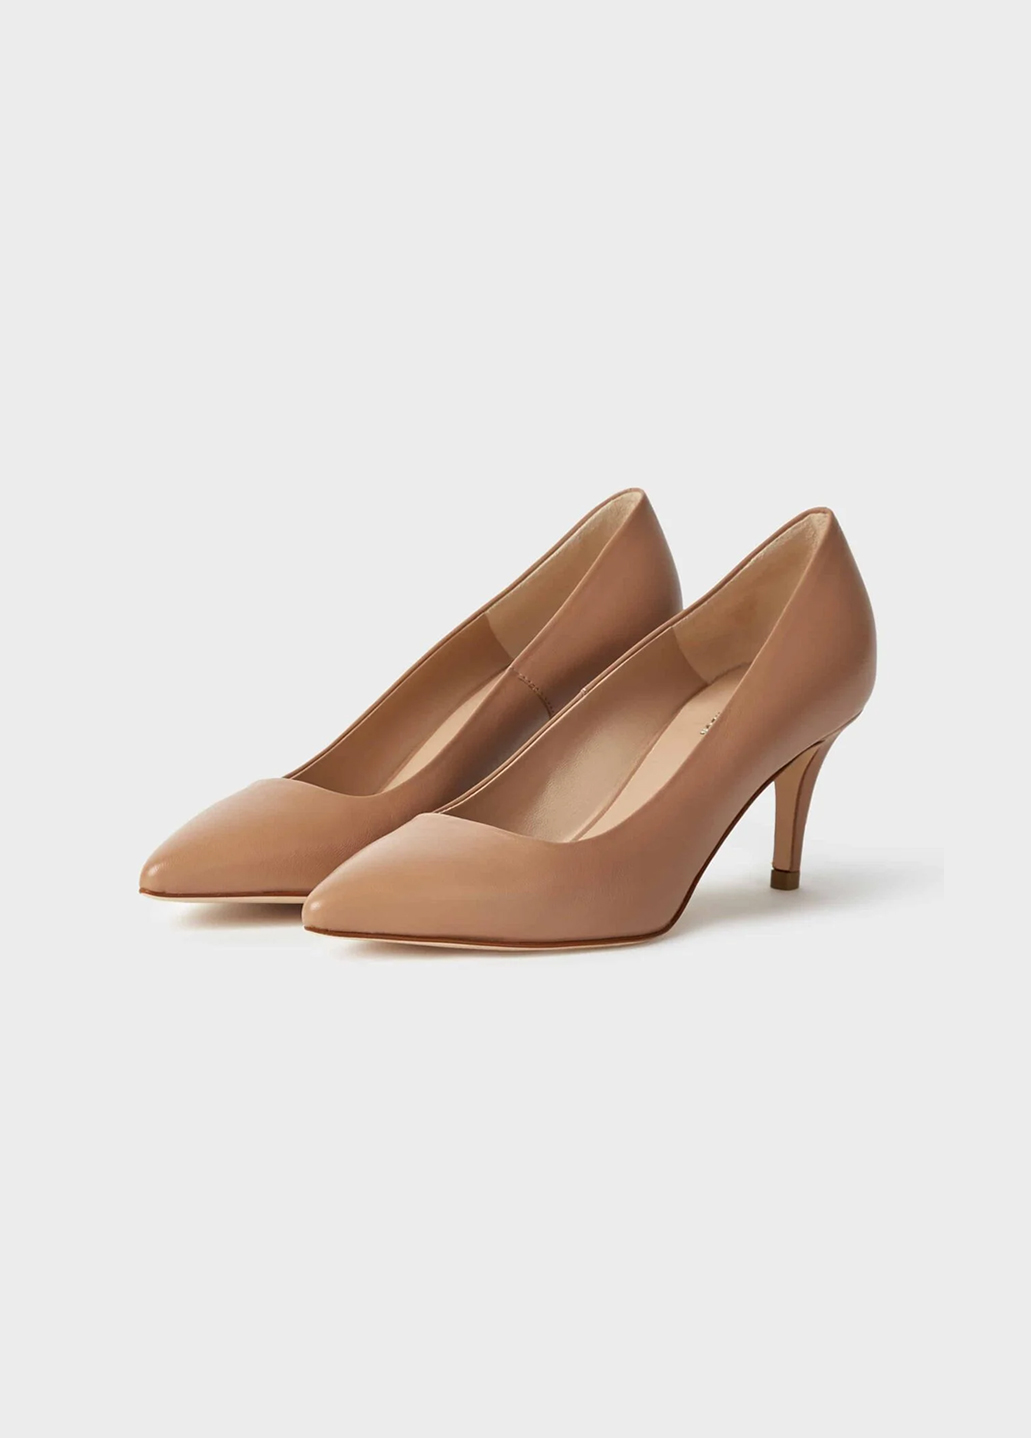 Nude court shoes by Hobbs. Choose mid heels for maximum comfort, a capsule wardrobe staple to pair with dresses and trousers.